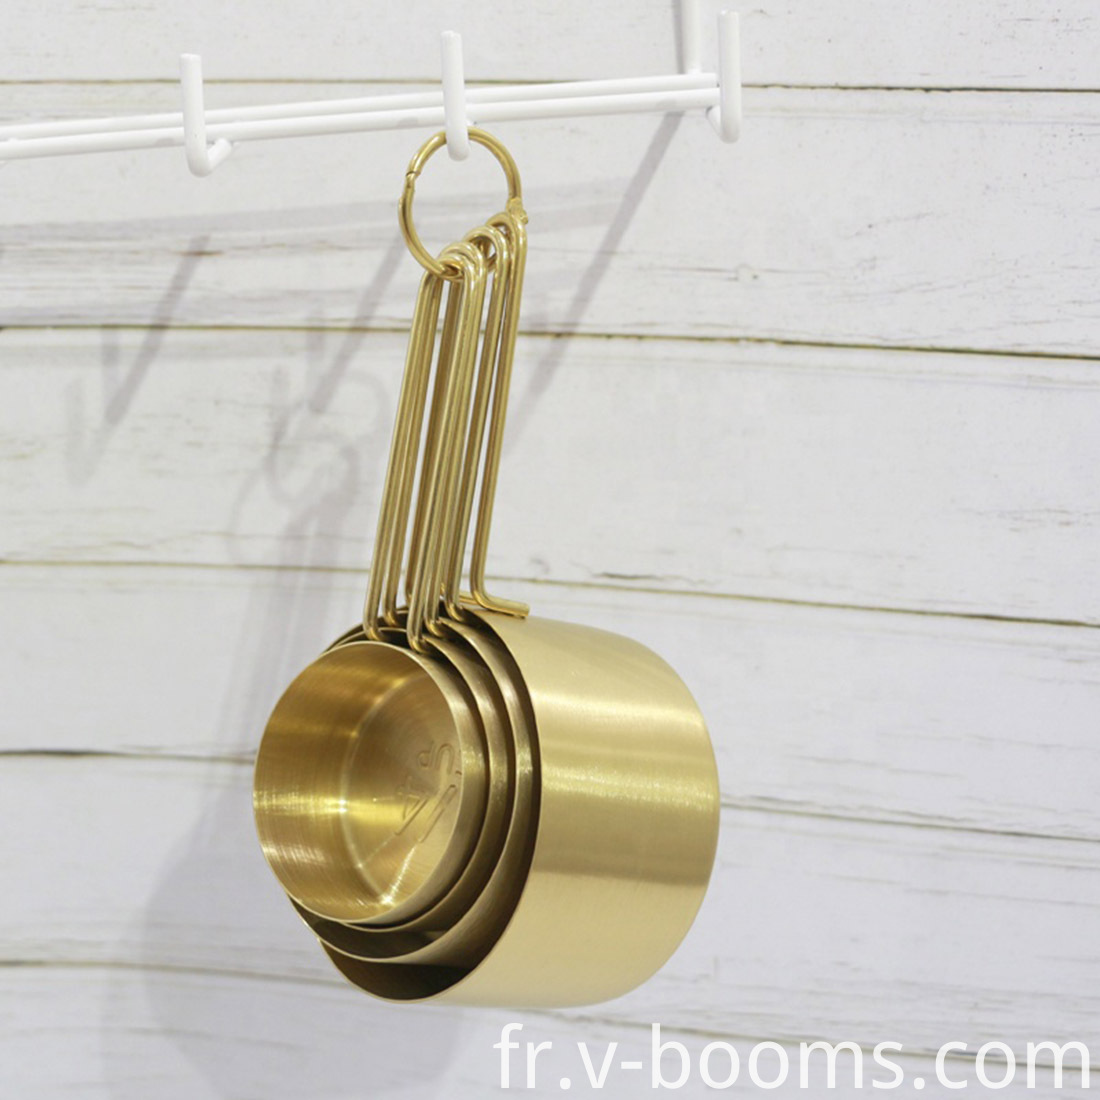 Stainless Steel Copper Measuring Cups